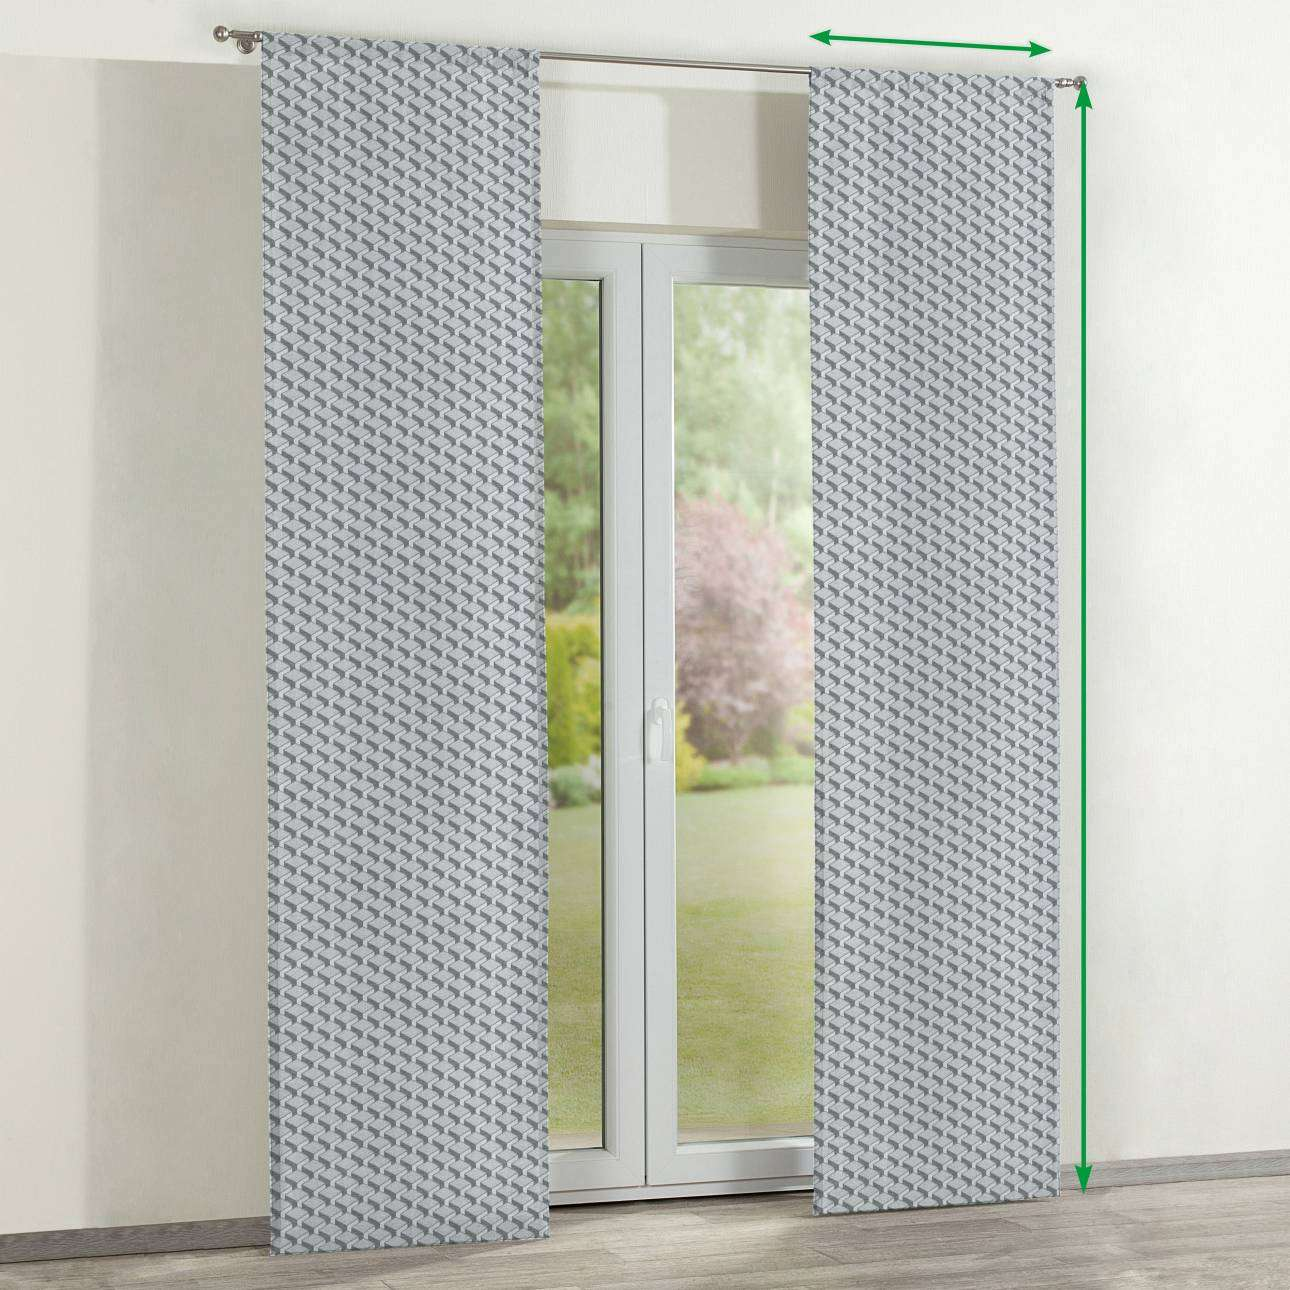 Slot panel curtains – Set of 2 in collection Rustica, fabric: 138-18